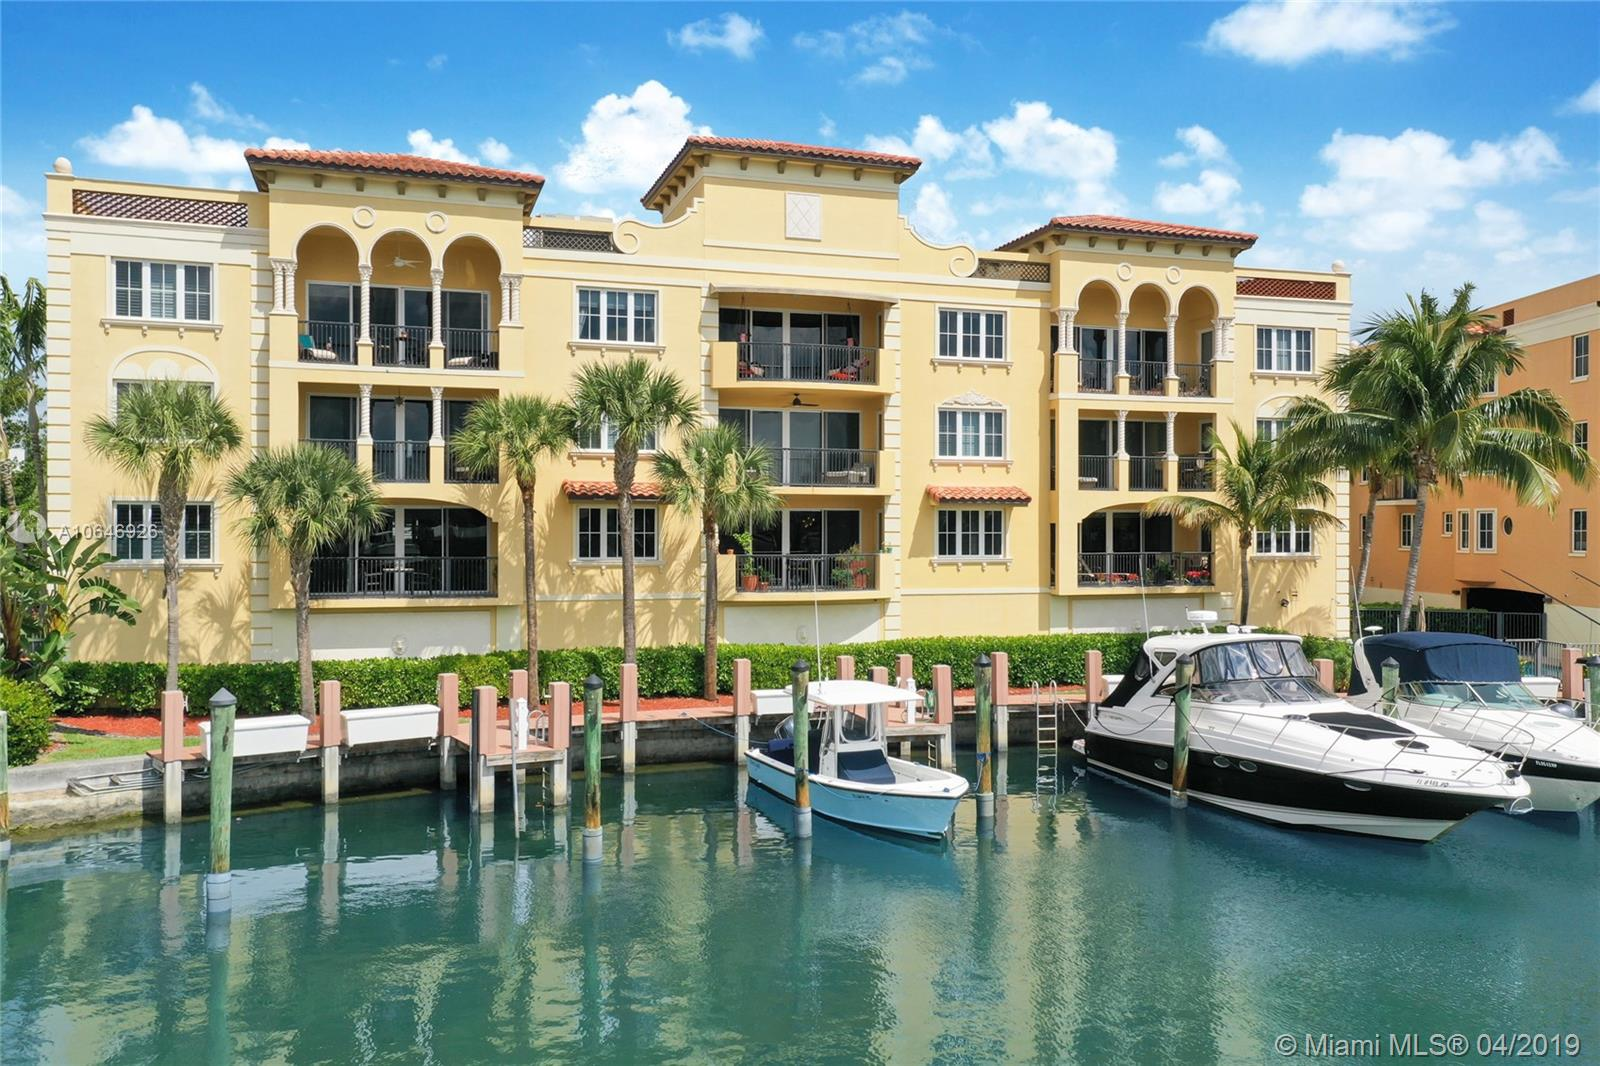 Enjoy luxury waterfront living at Hemingway Landing, a boutique waterfront community just minutes to downtown and the beaches and just steps to the Lauderdale Yacht Club.  Enjoy wide water views plus fast ocean access, no fixed bridges and a private boat slip with water and electric for boats up to 32'. This flow through corner model offers gracious living areas, gourmet kitchen with 6 burner Wolf gas range and Sub-Zero, split bedroom plan with en-suite baths, master suite with oversized master bath with separate whirlpool tub and shower, laundry room with full size W/D, impact glass, oversized terrace and 2 garage parking spaces.  Amenities include pool, spa, BBQ and manicured grounds.  Minutes to airport, cruise port and shopping.  Proof of funds/pre-approval requested with all offers.